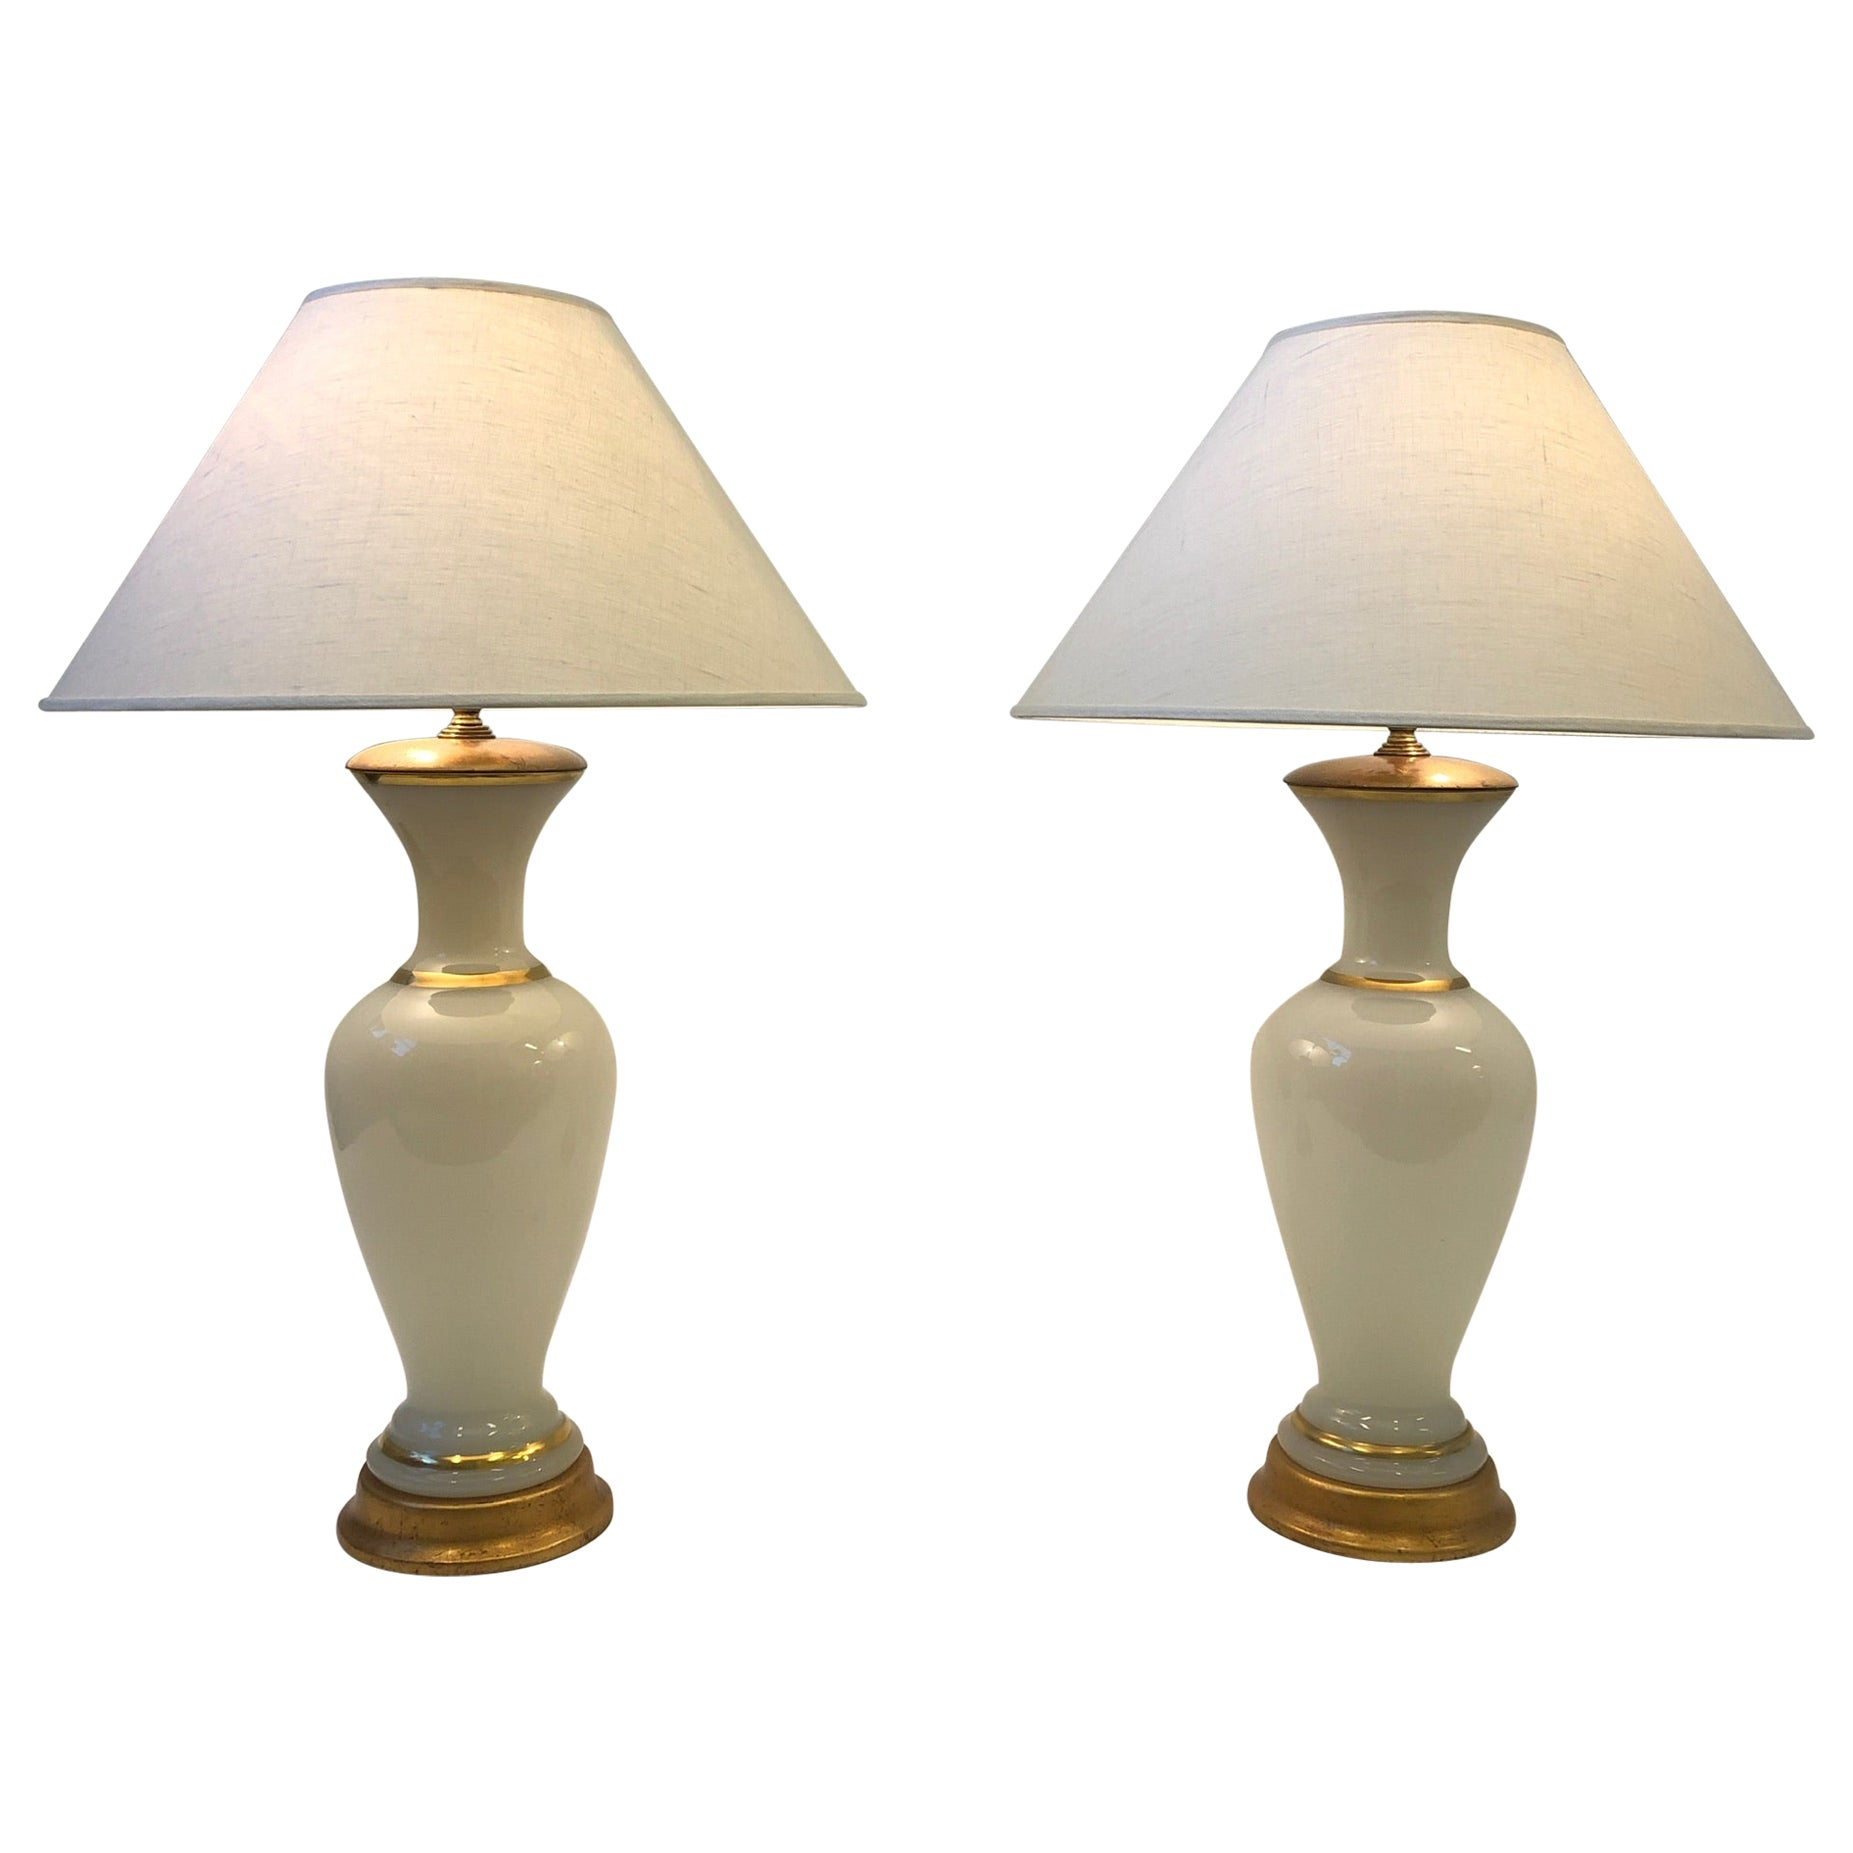 Pair of White Murano Glass and Brass Table Lamps by Marbro